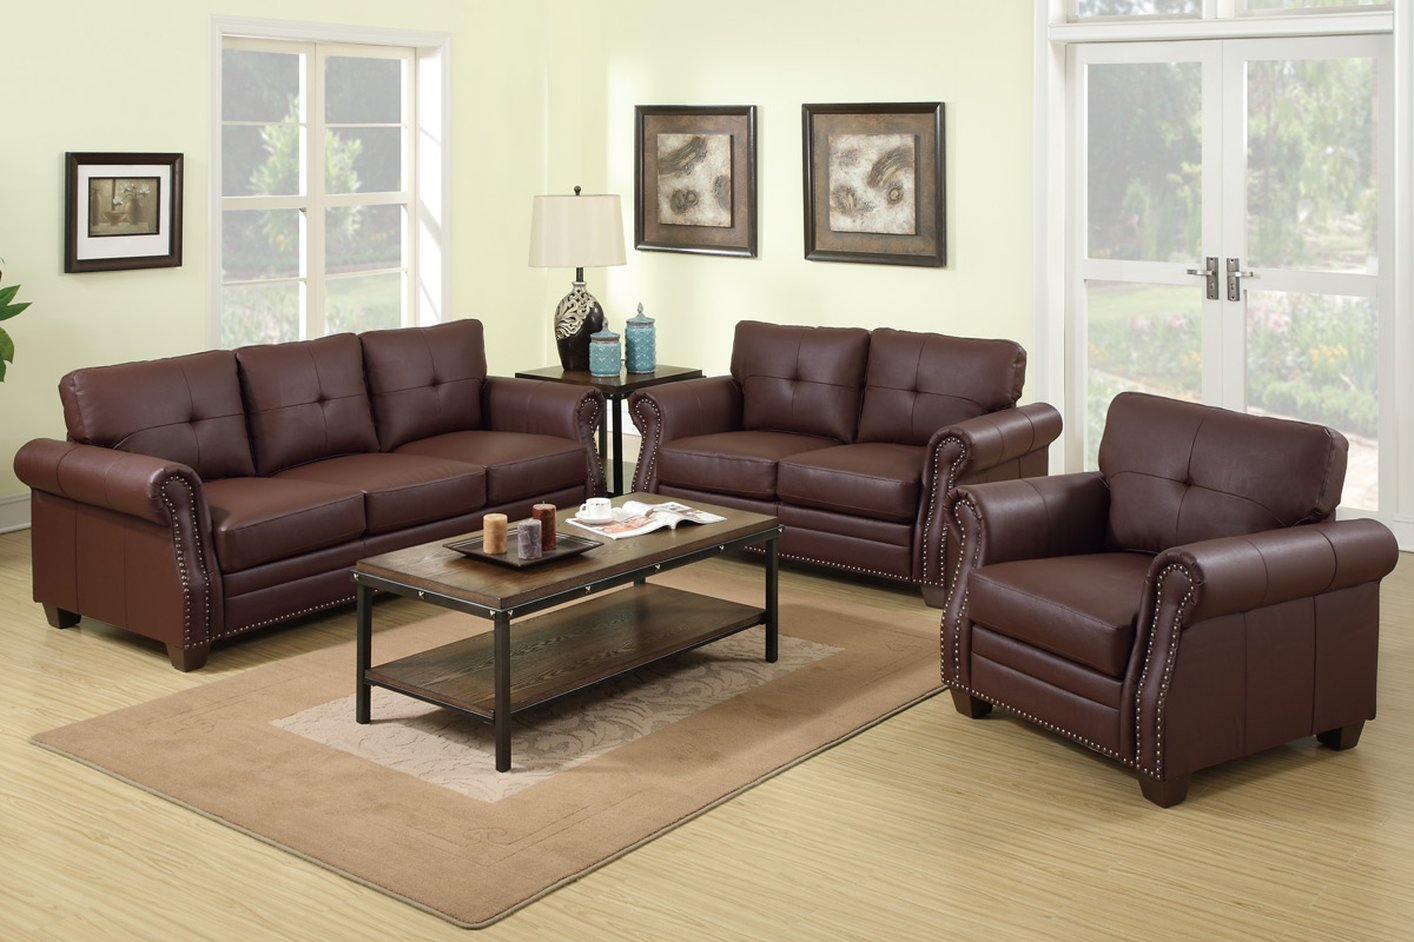 Poundex baron f7799 brown leather sofa and loveseat set for Couch sofa set